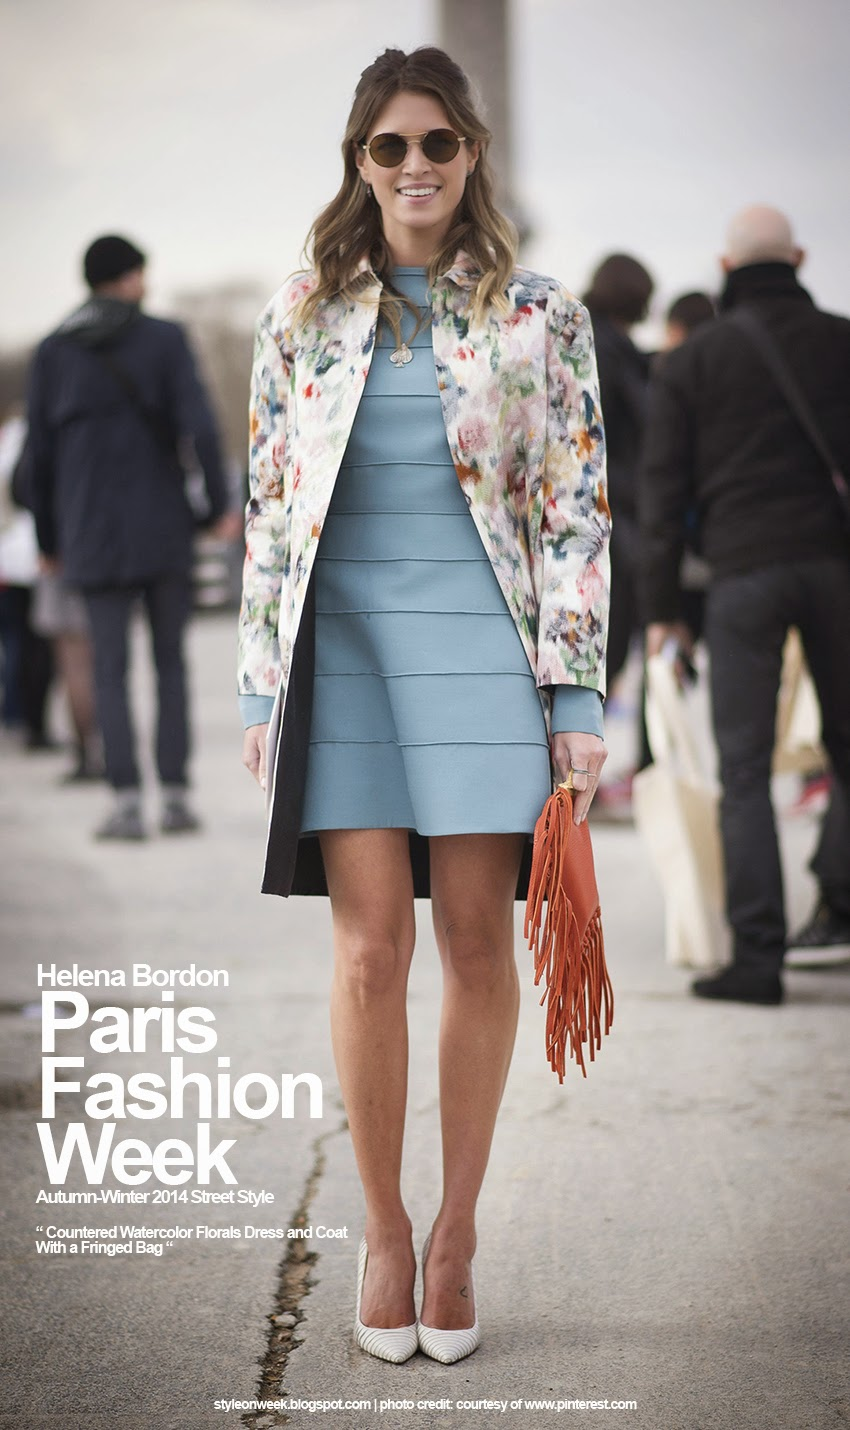 Paris Fashion Week Autumn-Winter 2014 Street Style - Countered Watercolor Florals Dress and Coat With a Fringed Bag